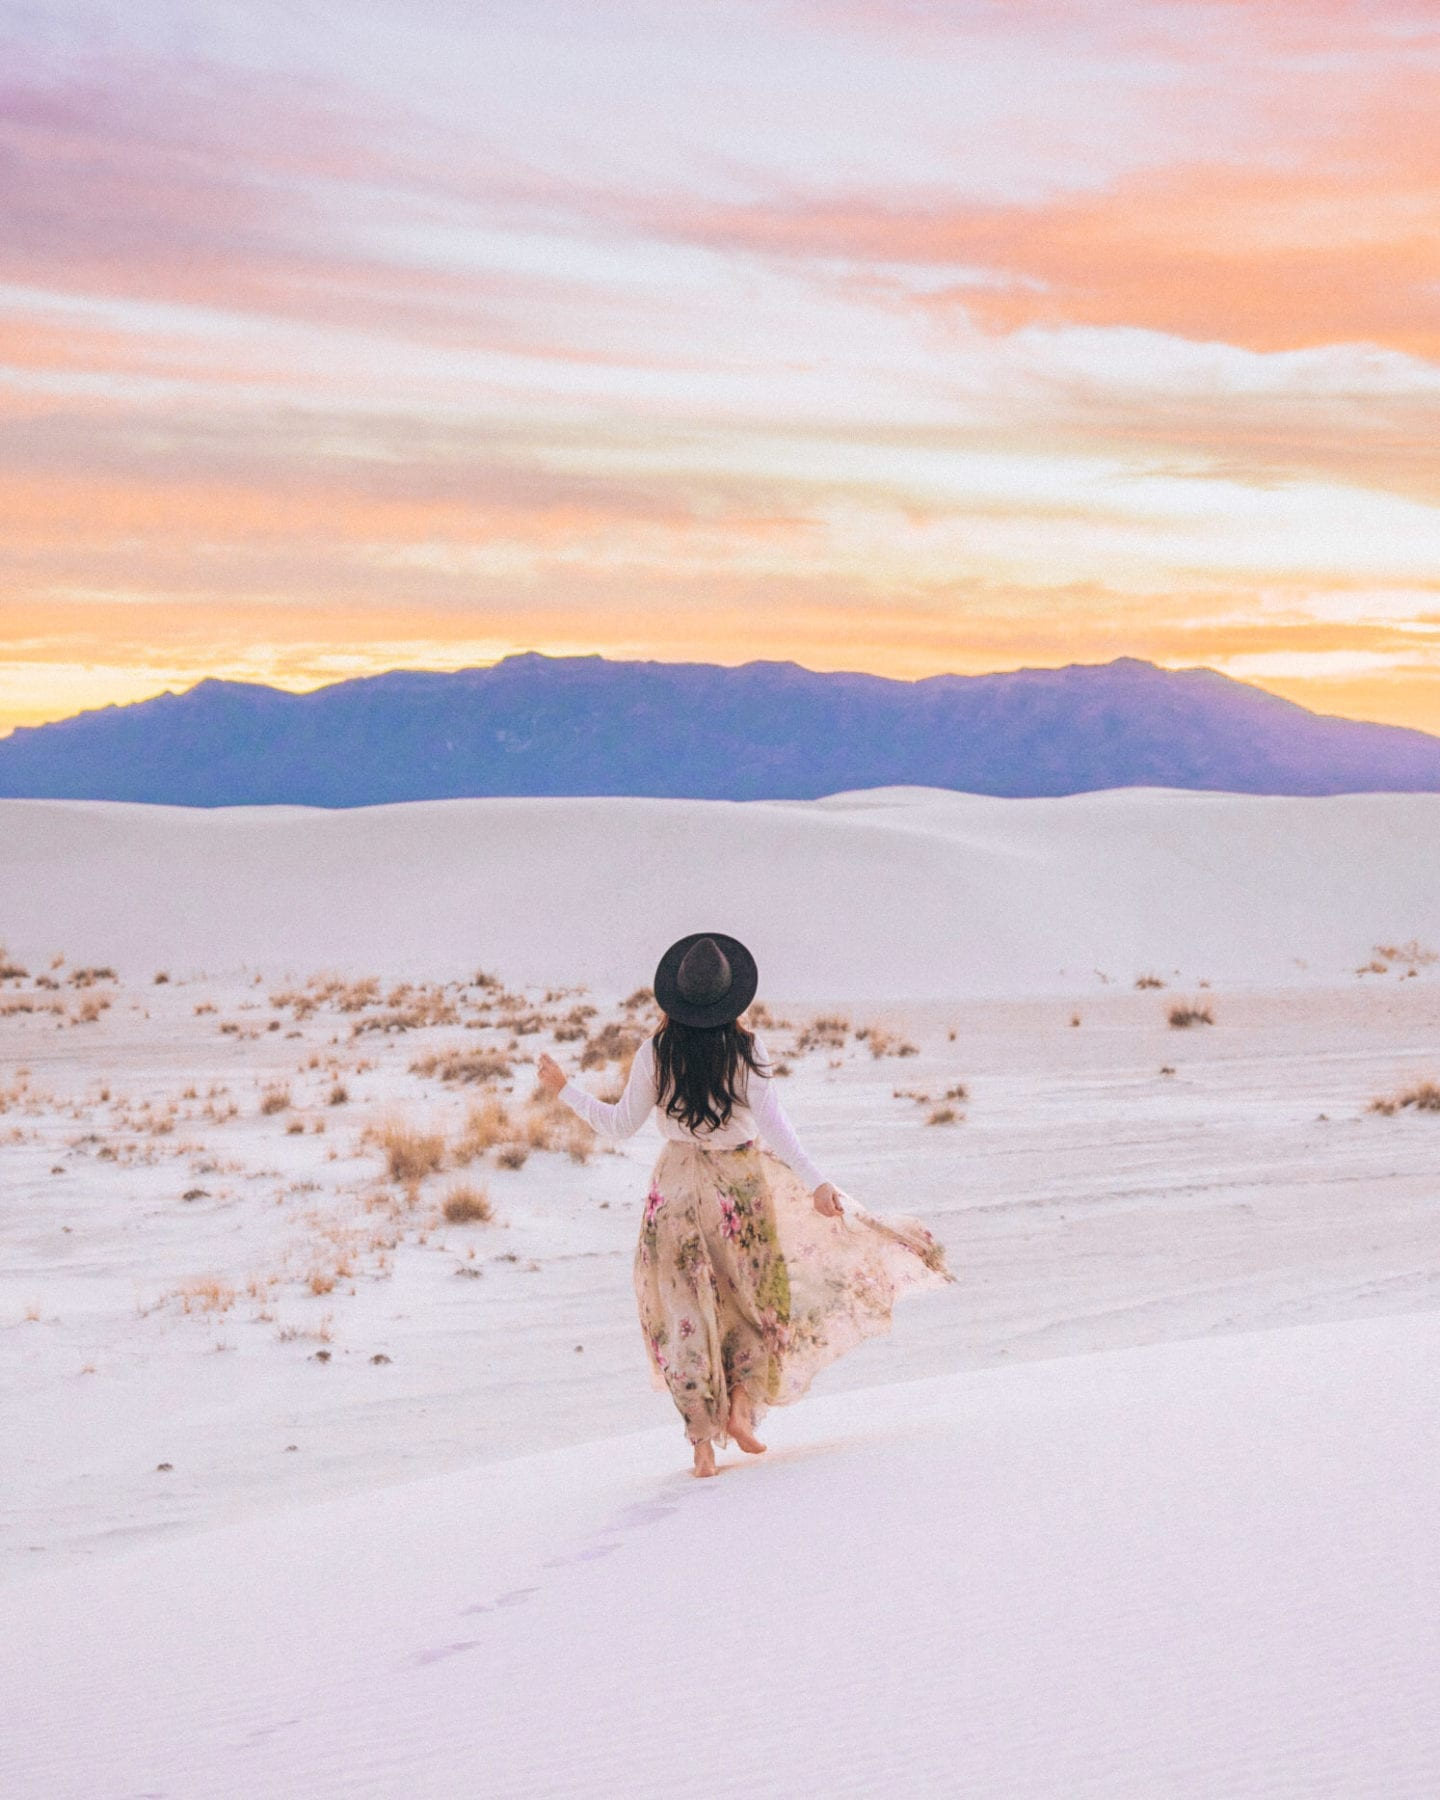 girl wearing skirt at white sands national monument at sunset